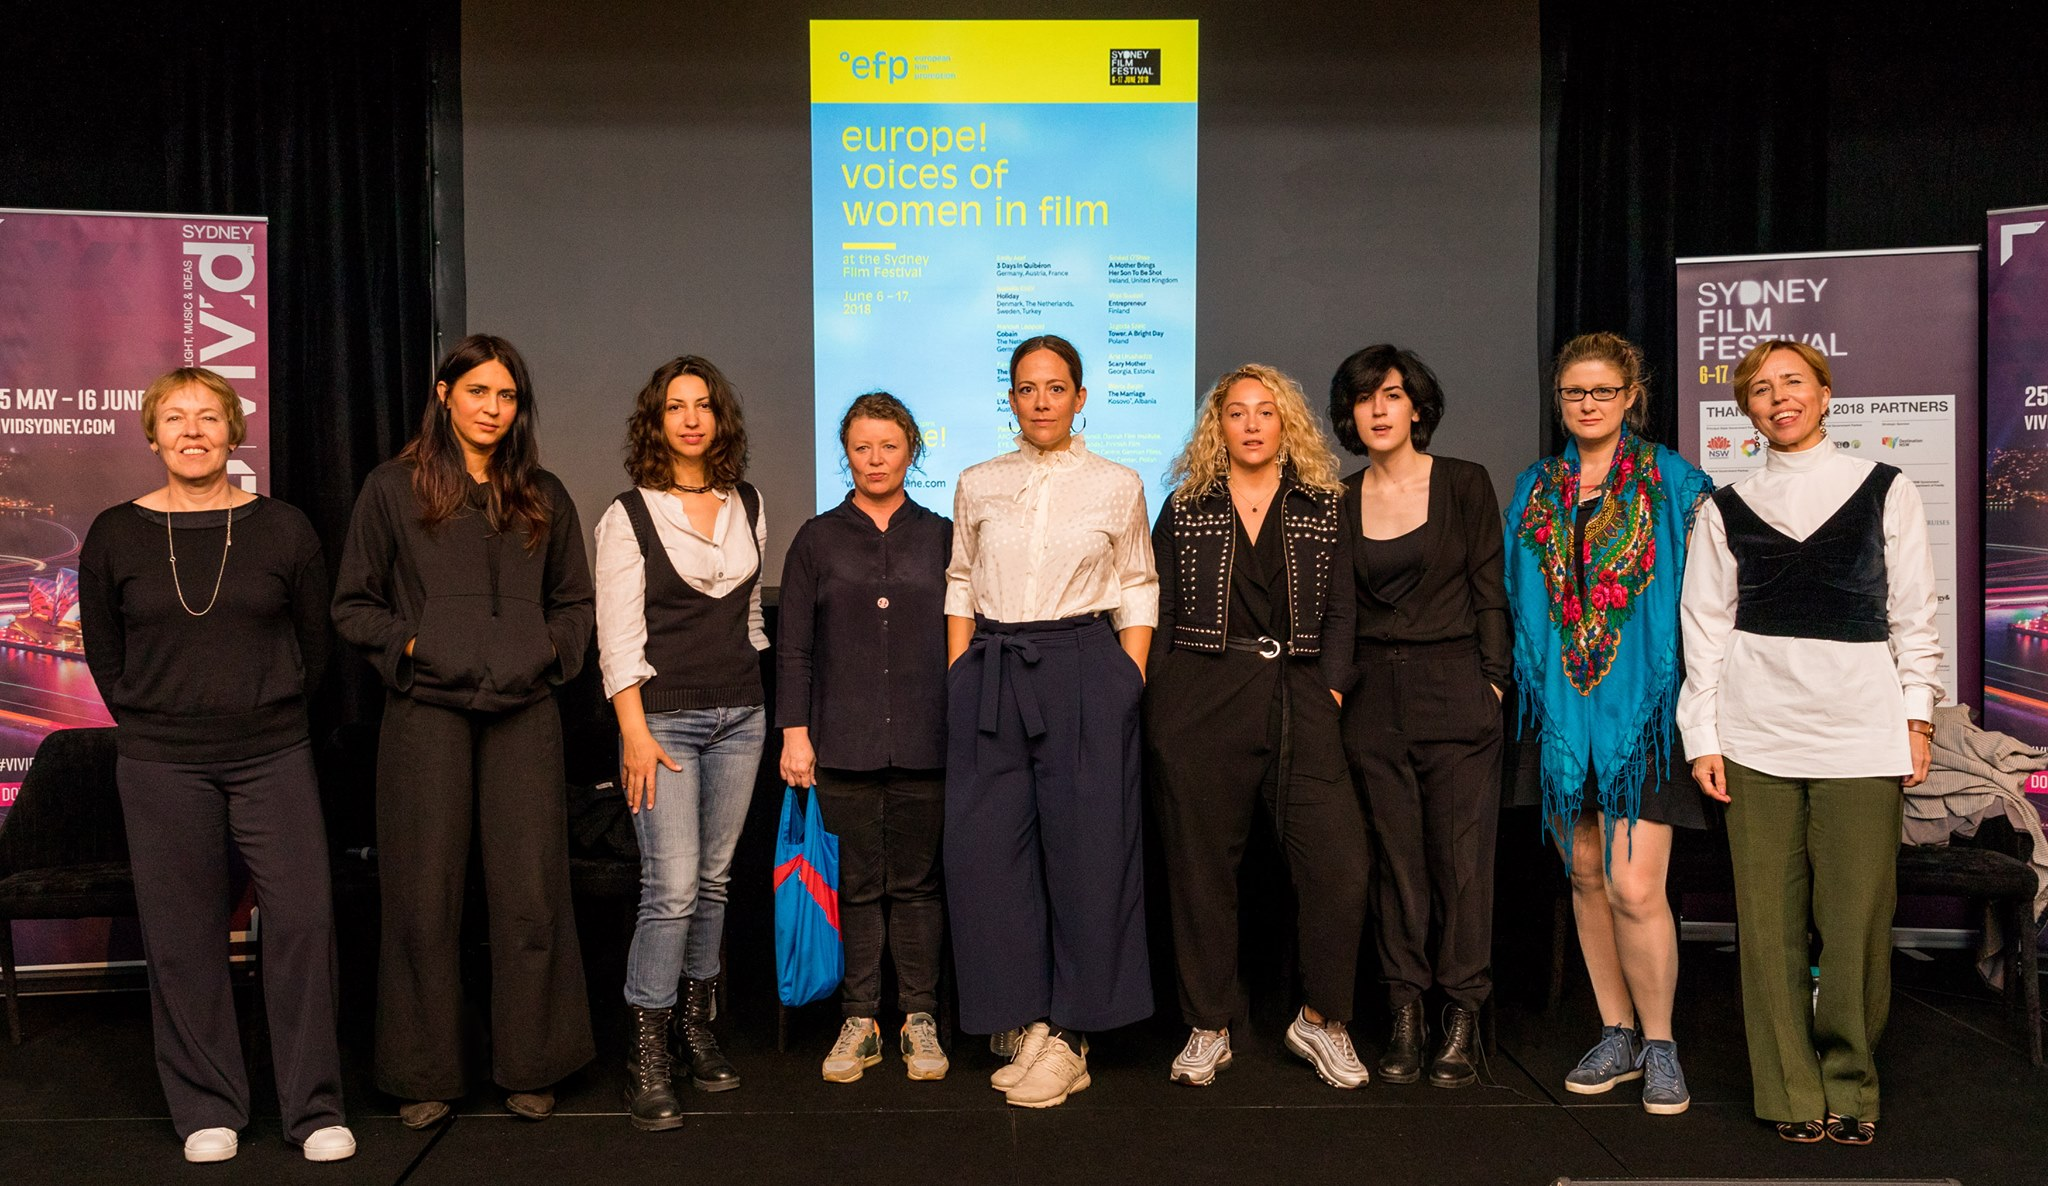 """""""Vivid Ideas and SFF Present: In Conversation with European Women Filmmakers"""" was held on June 10, 2018 as part of the Sydney Film Festival Program."""